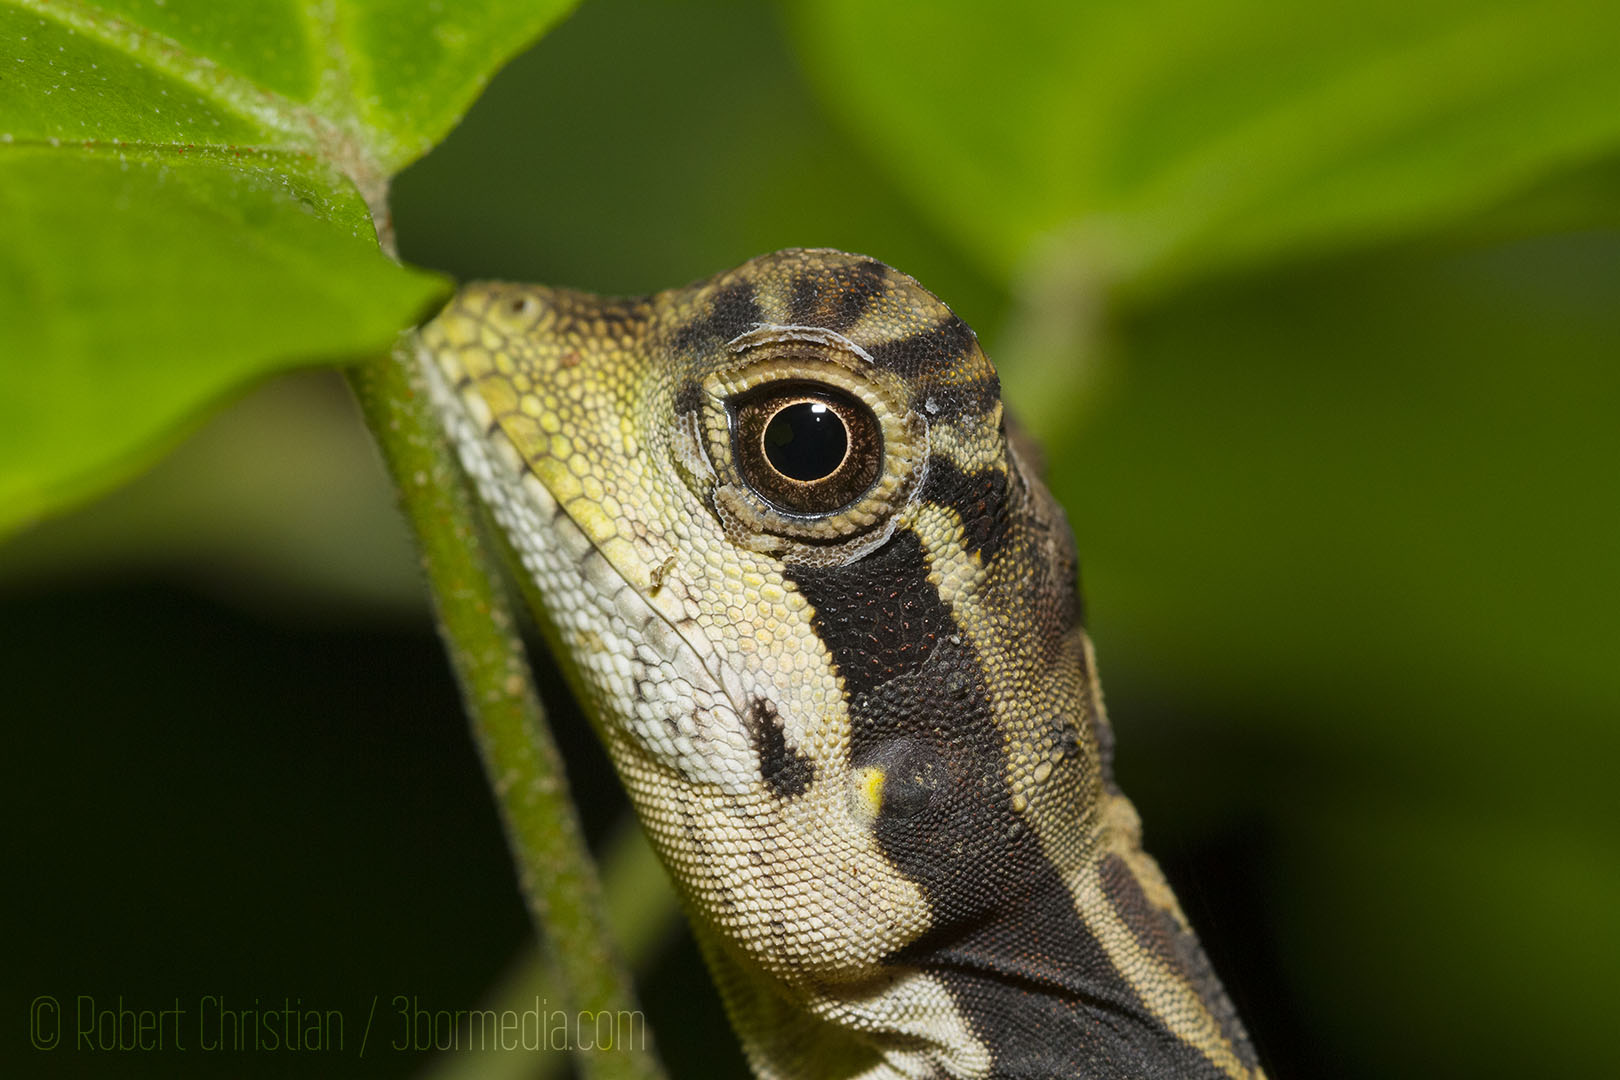 Closeup on the head of the Bornean Angle-Headed Lizard.